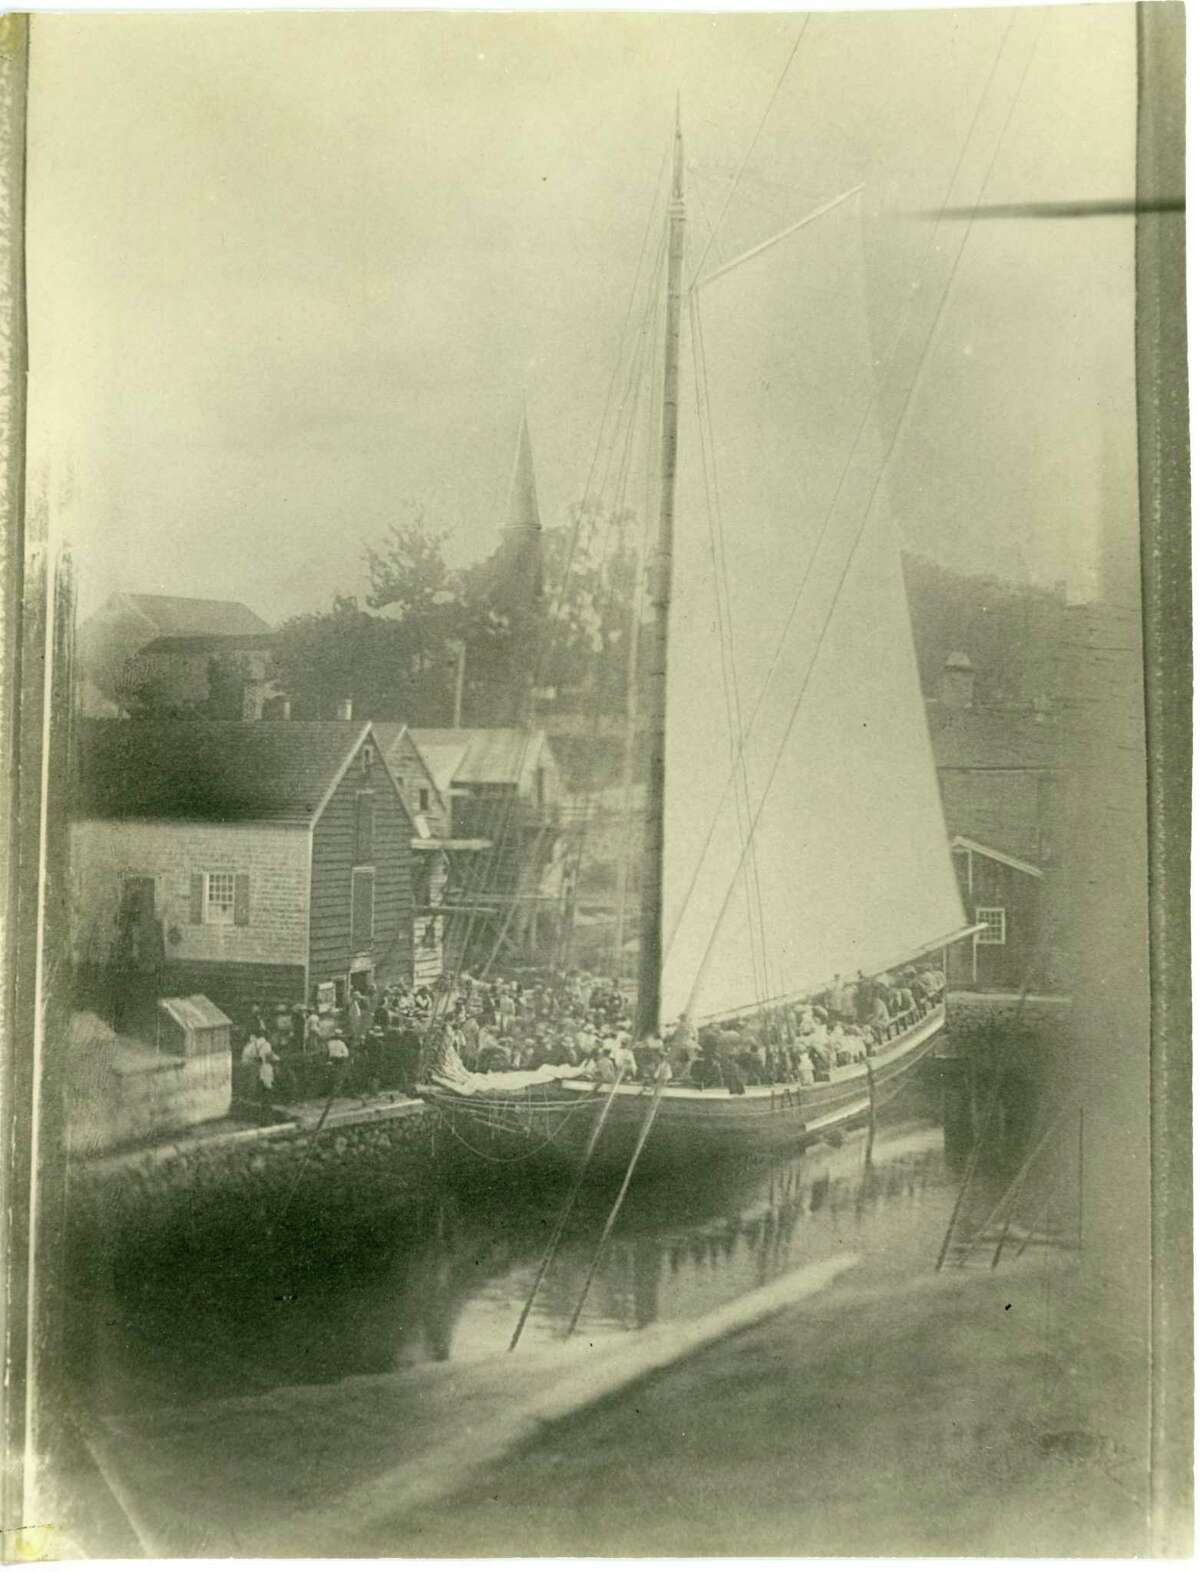 This circa 1850 photograph of the merchant sloop